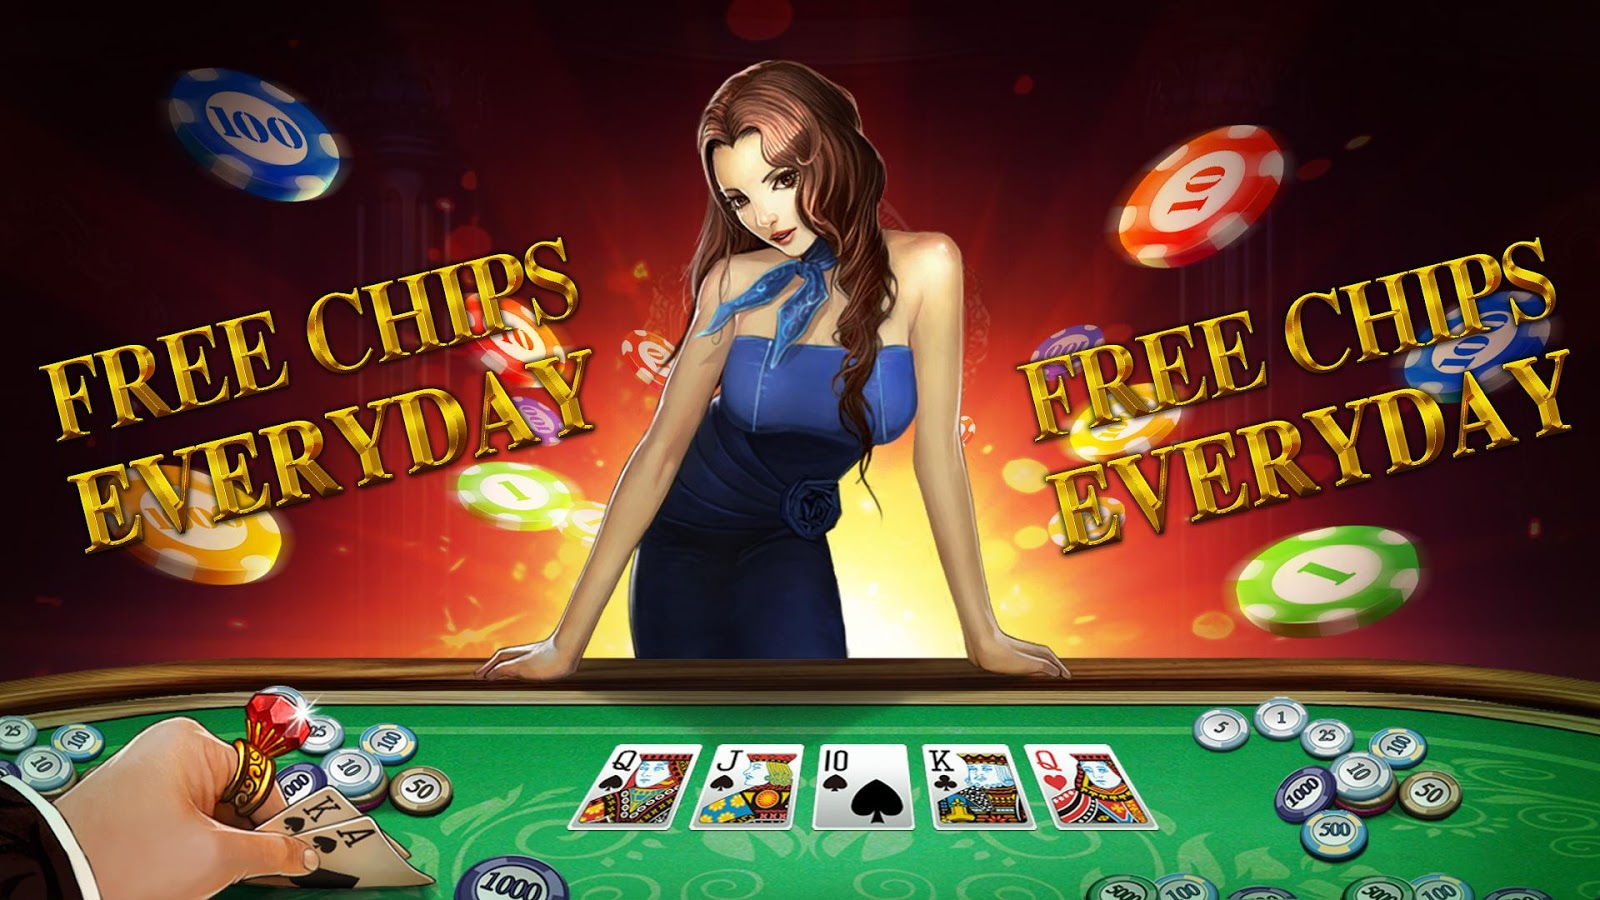 DH Texas Poker - Texas Hold'em Screenshot 1